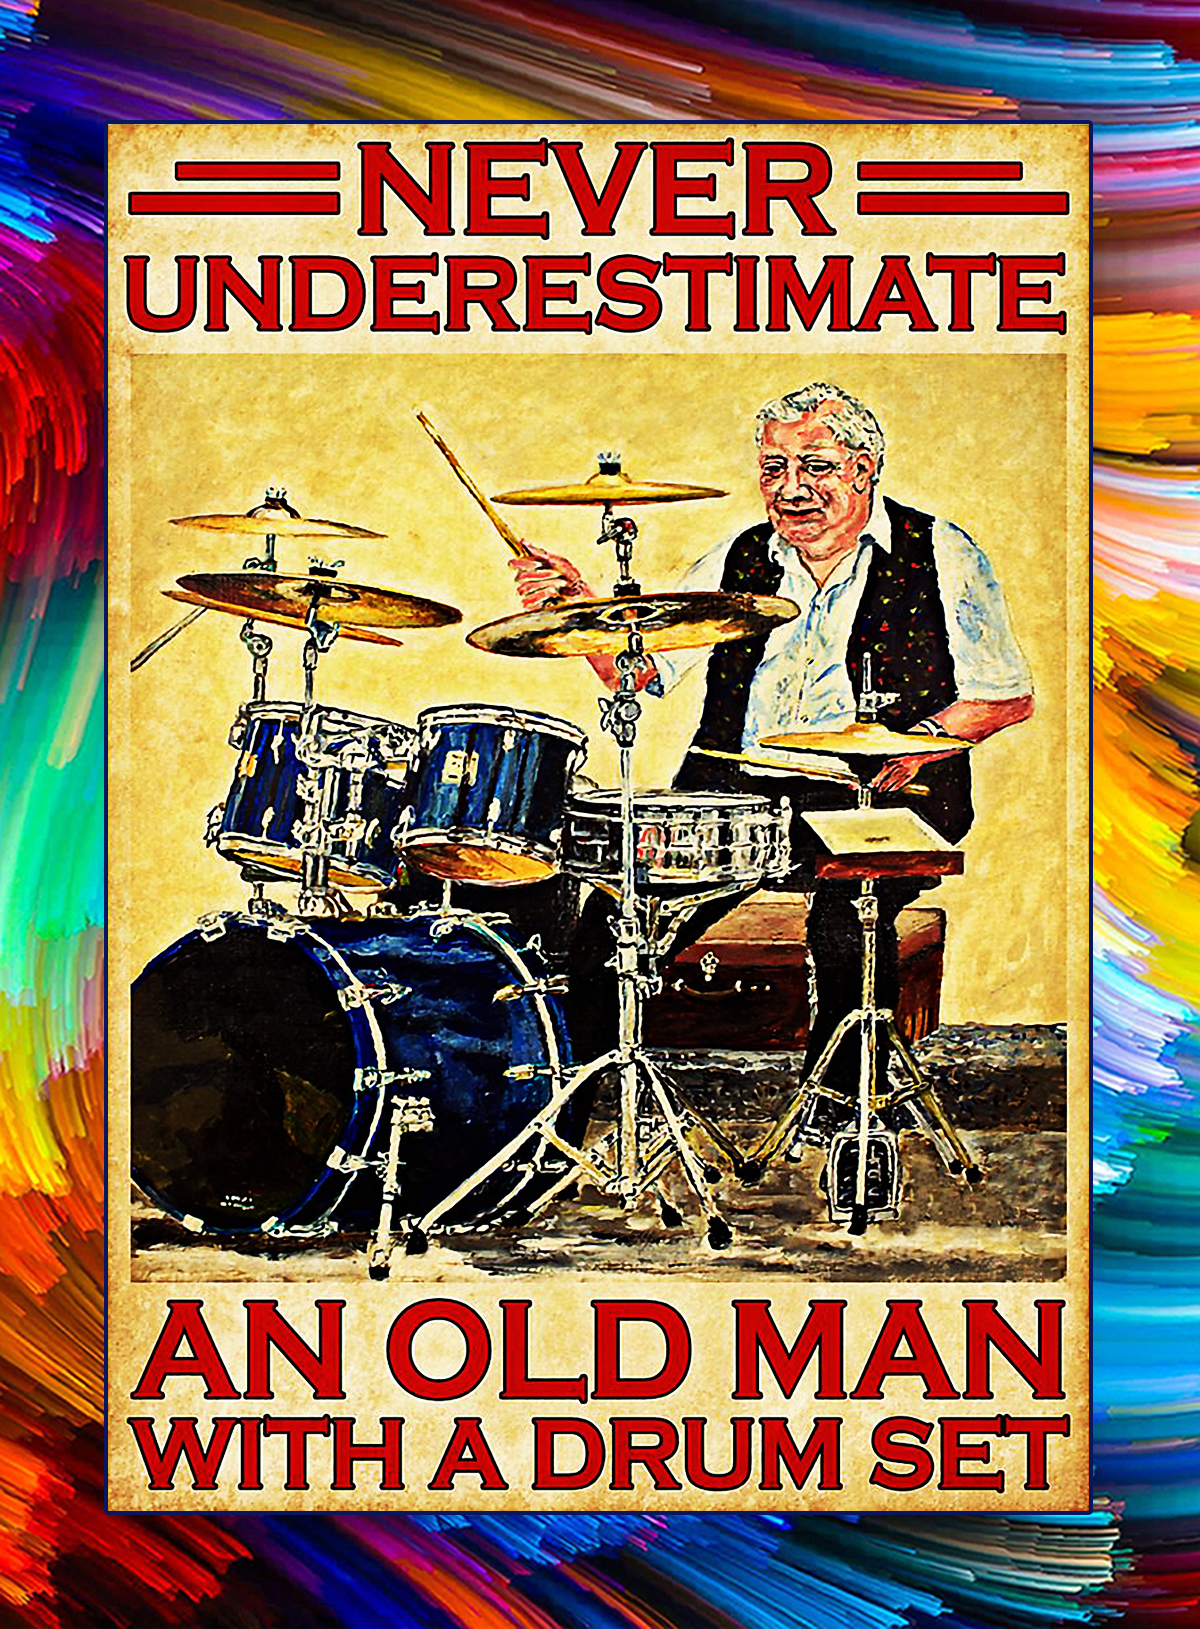 Never underestimate an old man with a drum set poster - A4